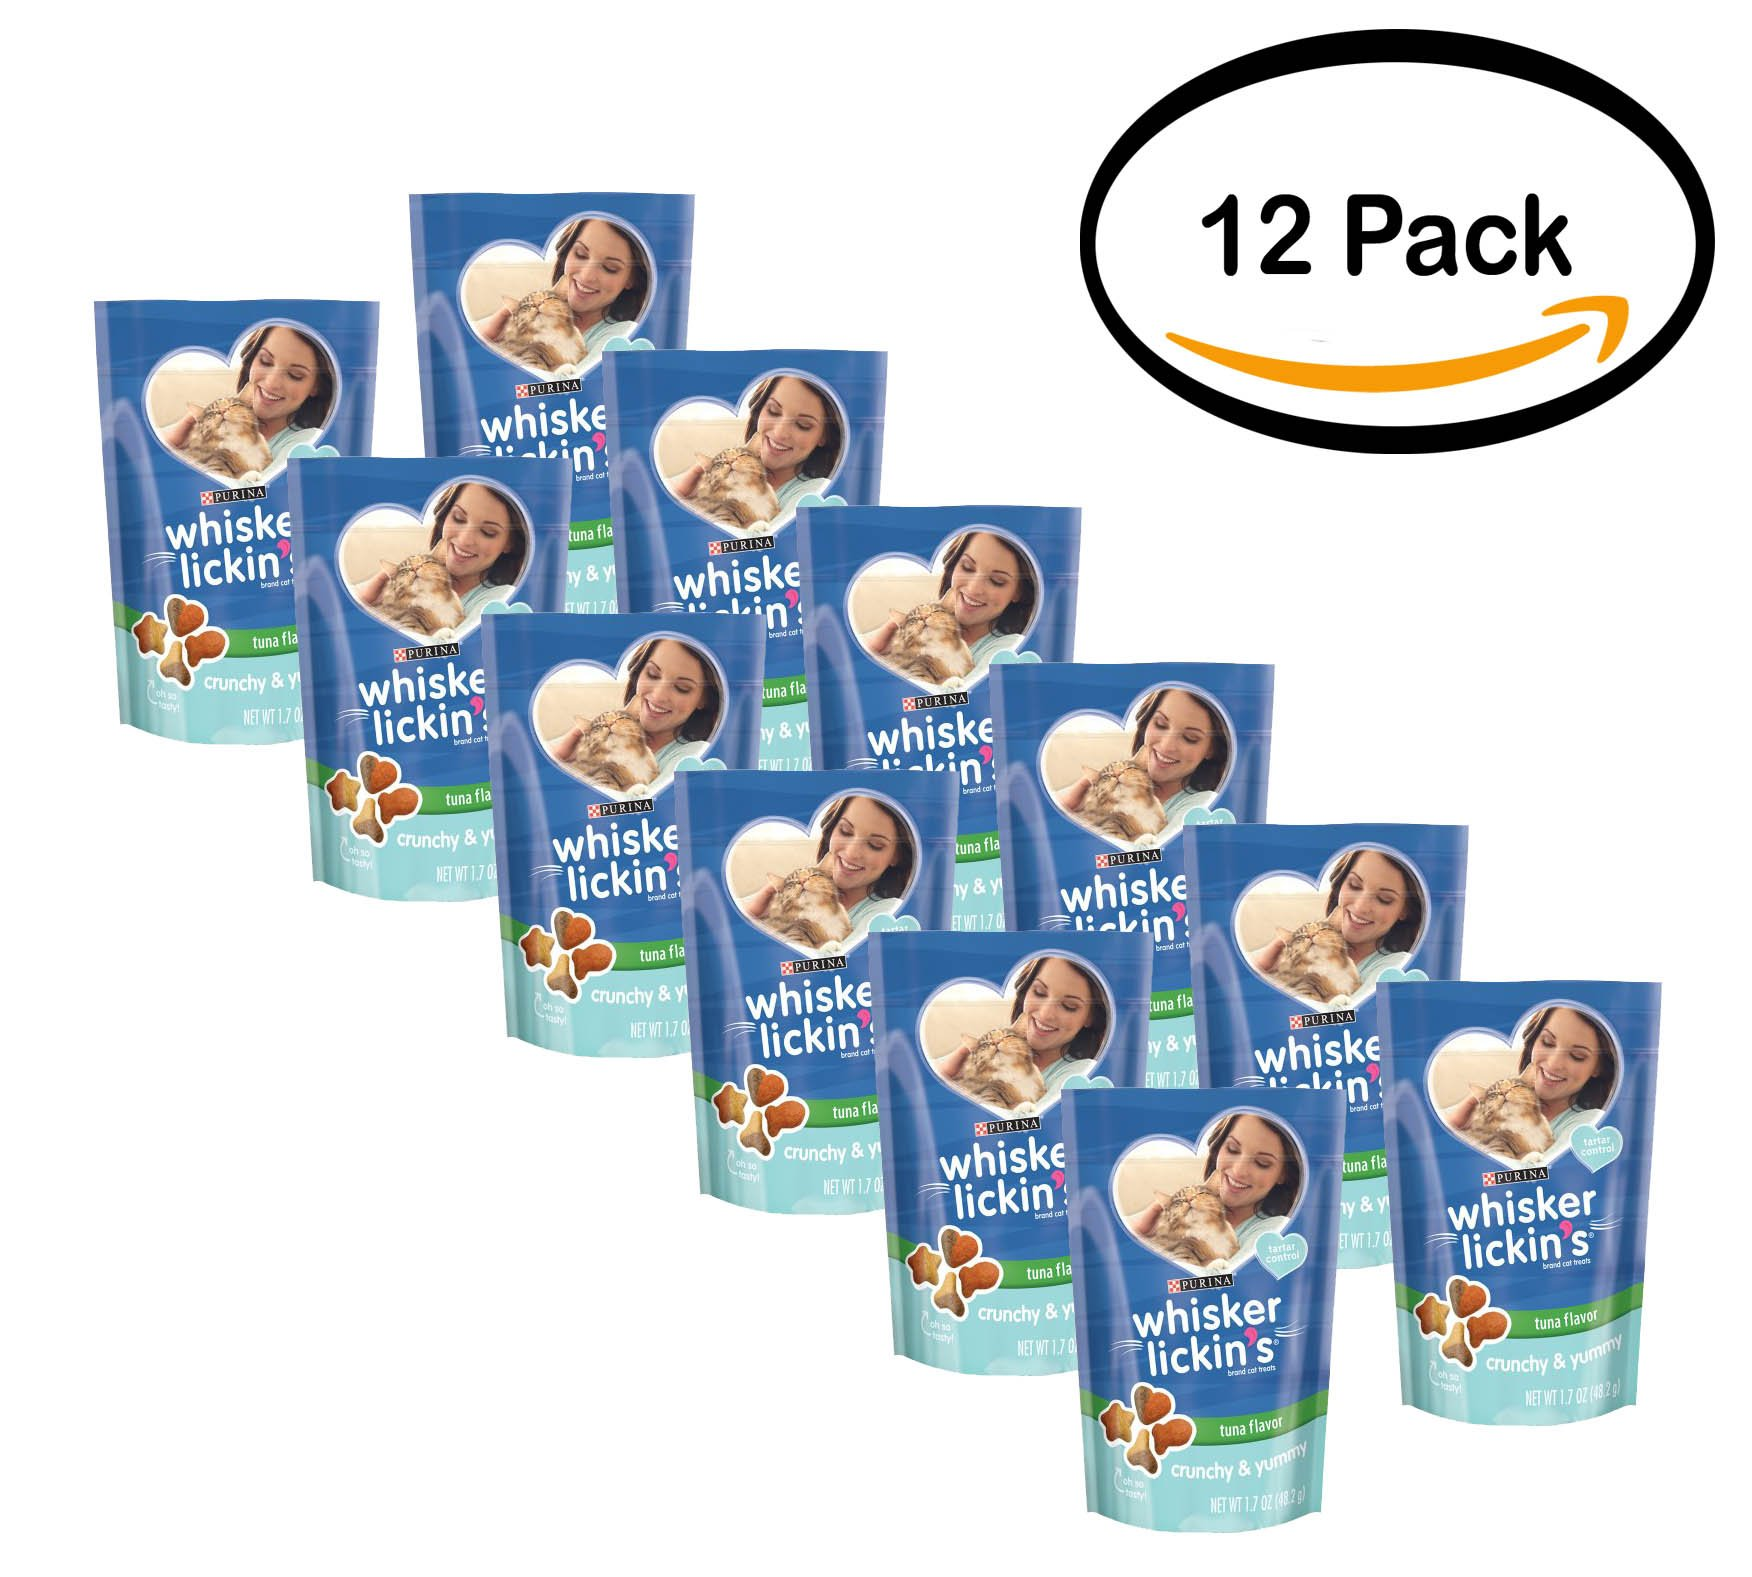 PACK OF 12 - Purina Whisker Lickin's Crunchy & Yummy Tuna Flavor Cat Treats 1.7 oz. Pouch